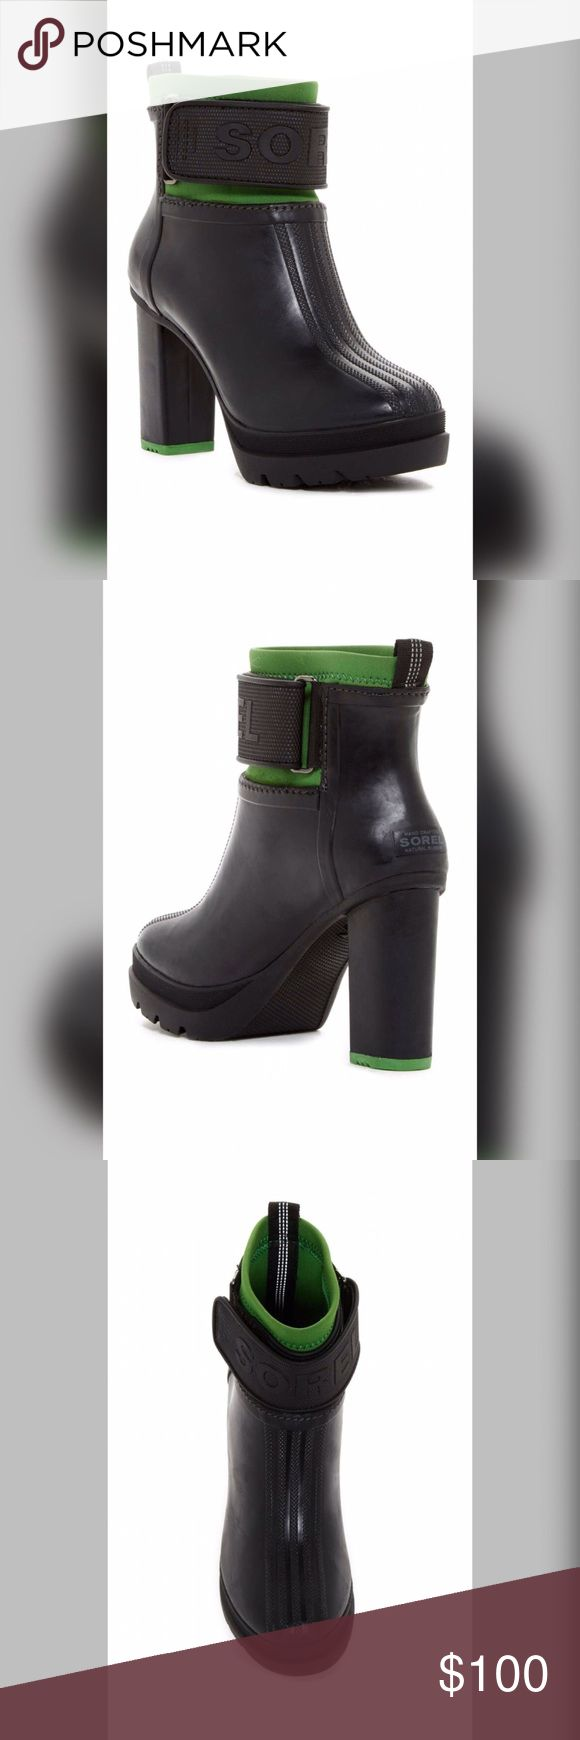 SALE Sorel Medina III Waterproof Boot SZ 7 Brand New in Box Sorel Medina III Waterproof Boots in size 7. Retail for $225 + tax. Soft and comfortable and 4 inches tall. Ready for St. Patrick's Day Celebration 😍❤Make me an offer.. Sorel Shoes Ankle Boots & Booties